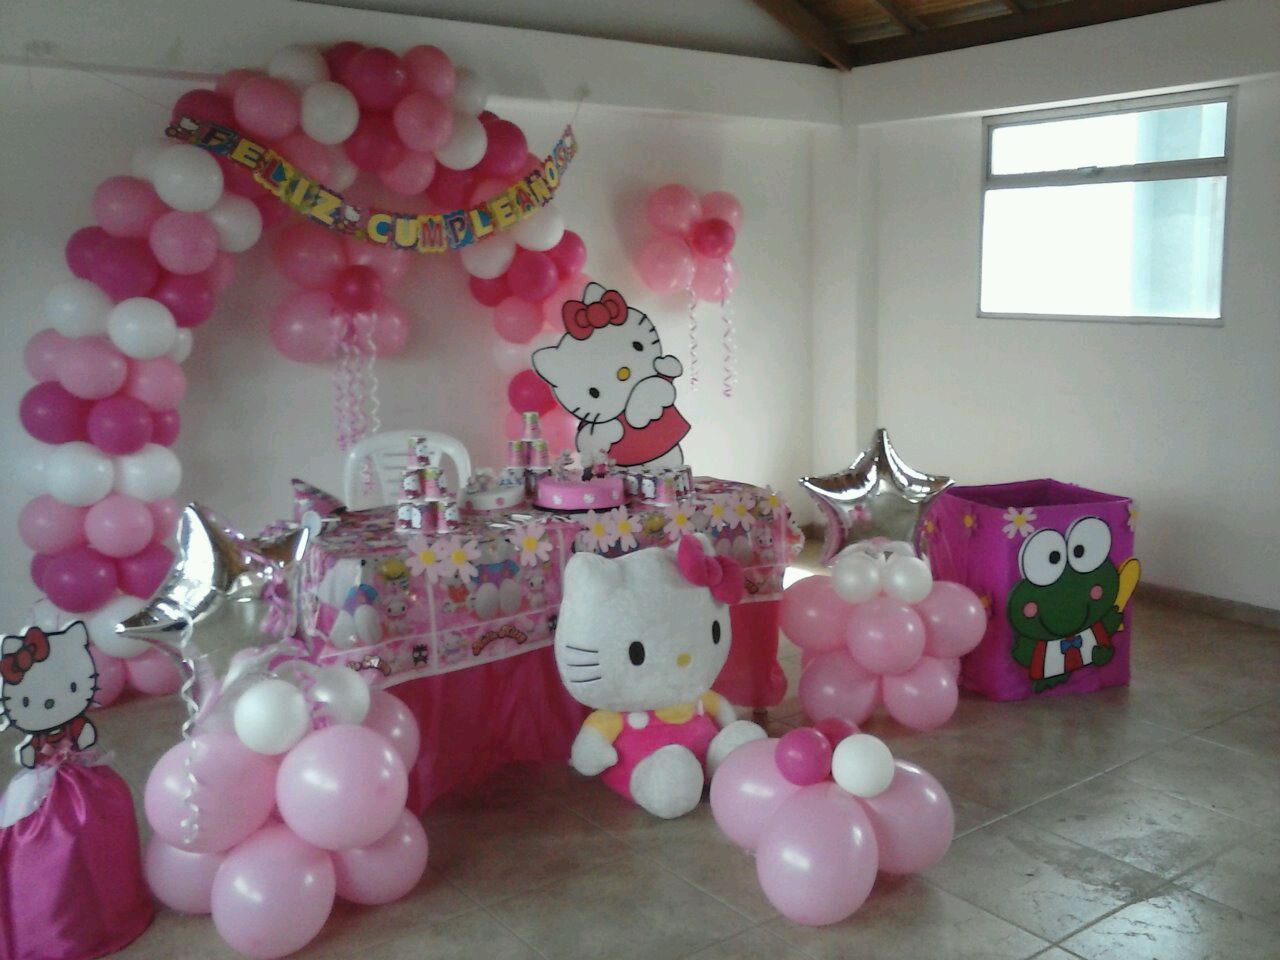 Decoraciones De Fiestas Infantiles Recreacion Tematica Hello Kitty Fiestas Infantiles